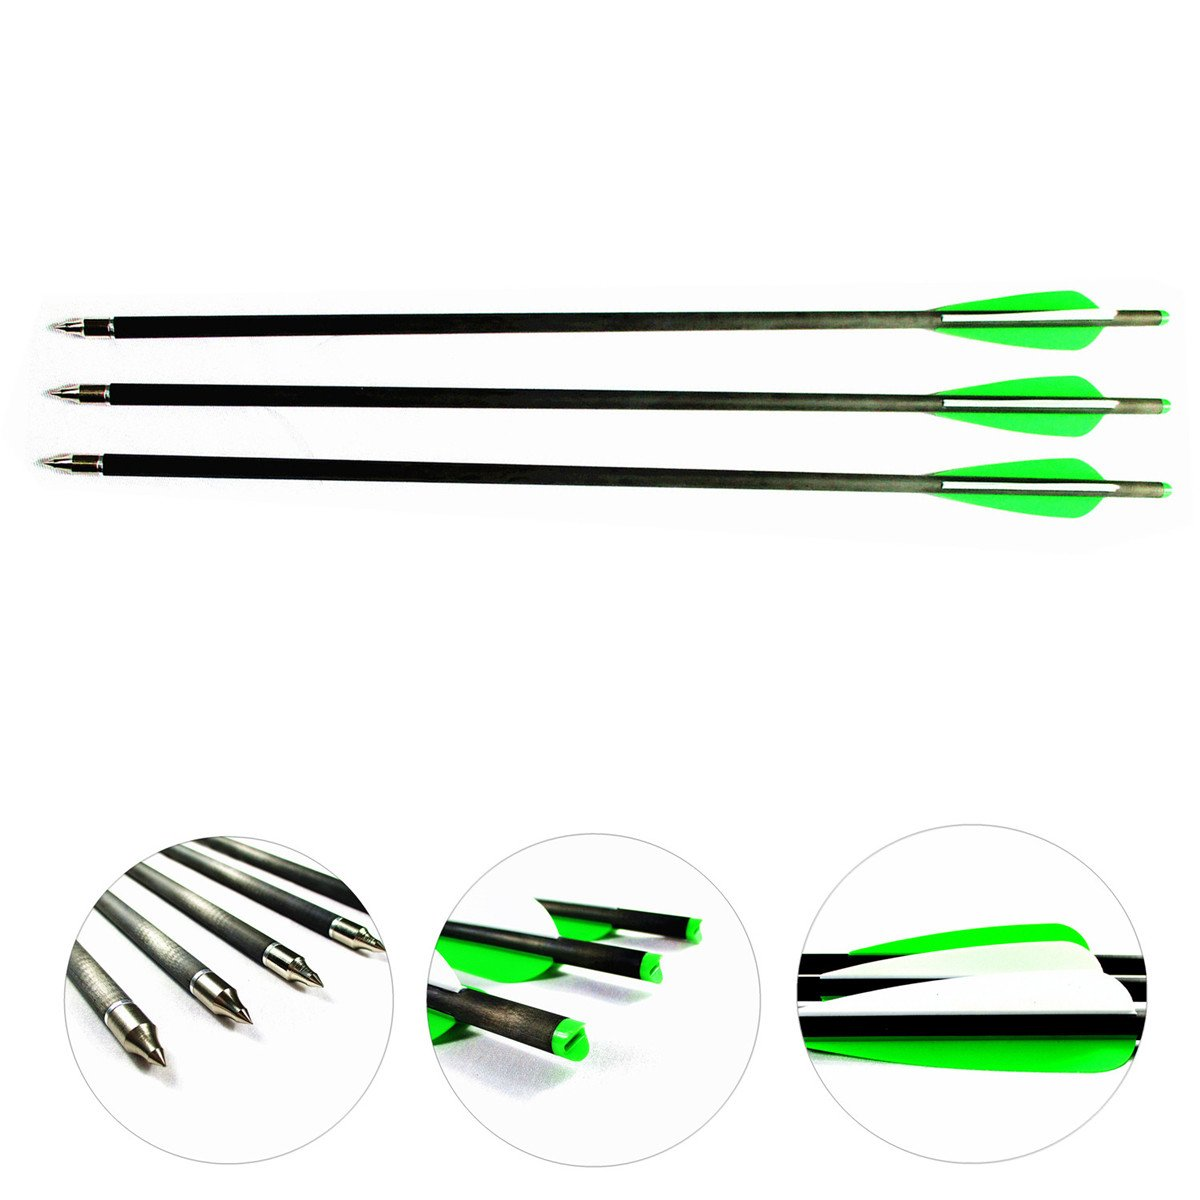 Letszhu Carbon Crossbow Arrows, Archery Target Hunting Arrows Shaft with 4'' TPU Vanes and Replaceable Tips for Crossbow Bolts (16 Inch Pack of 6)